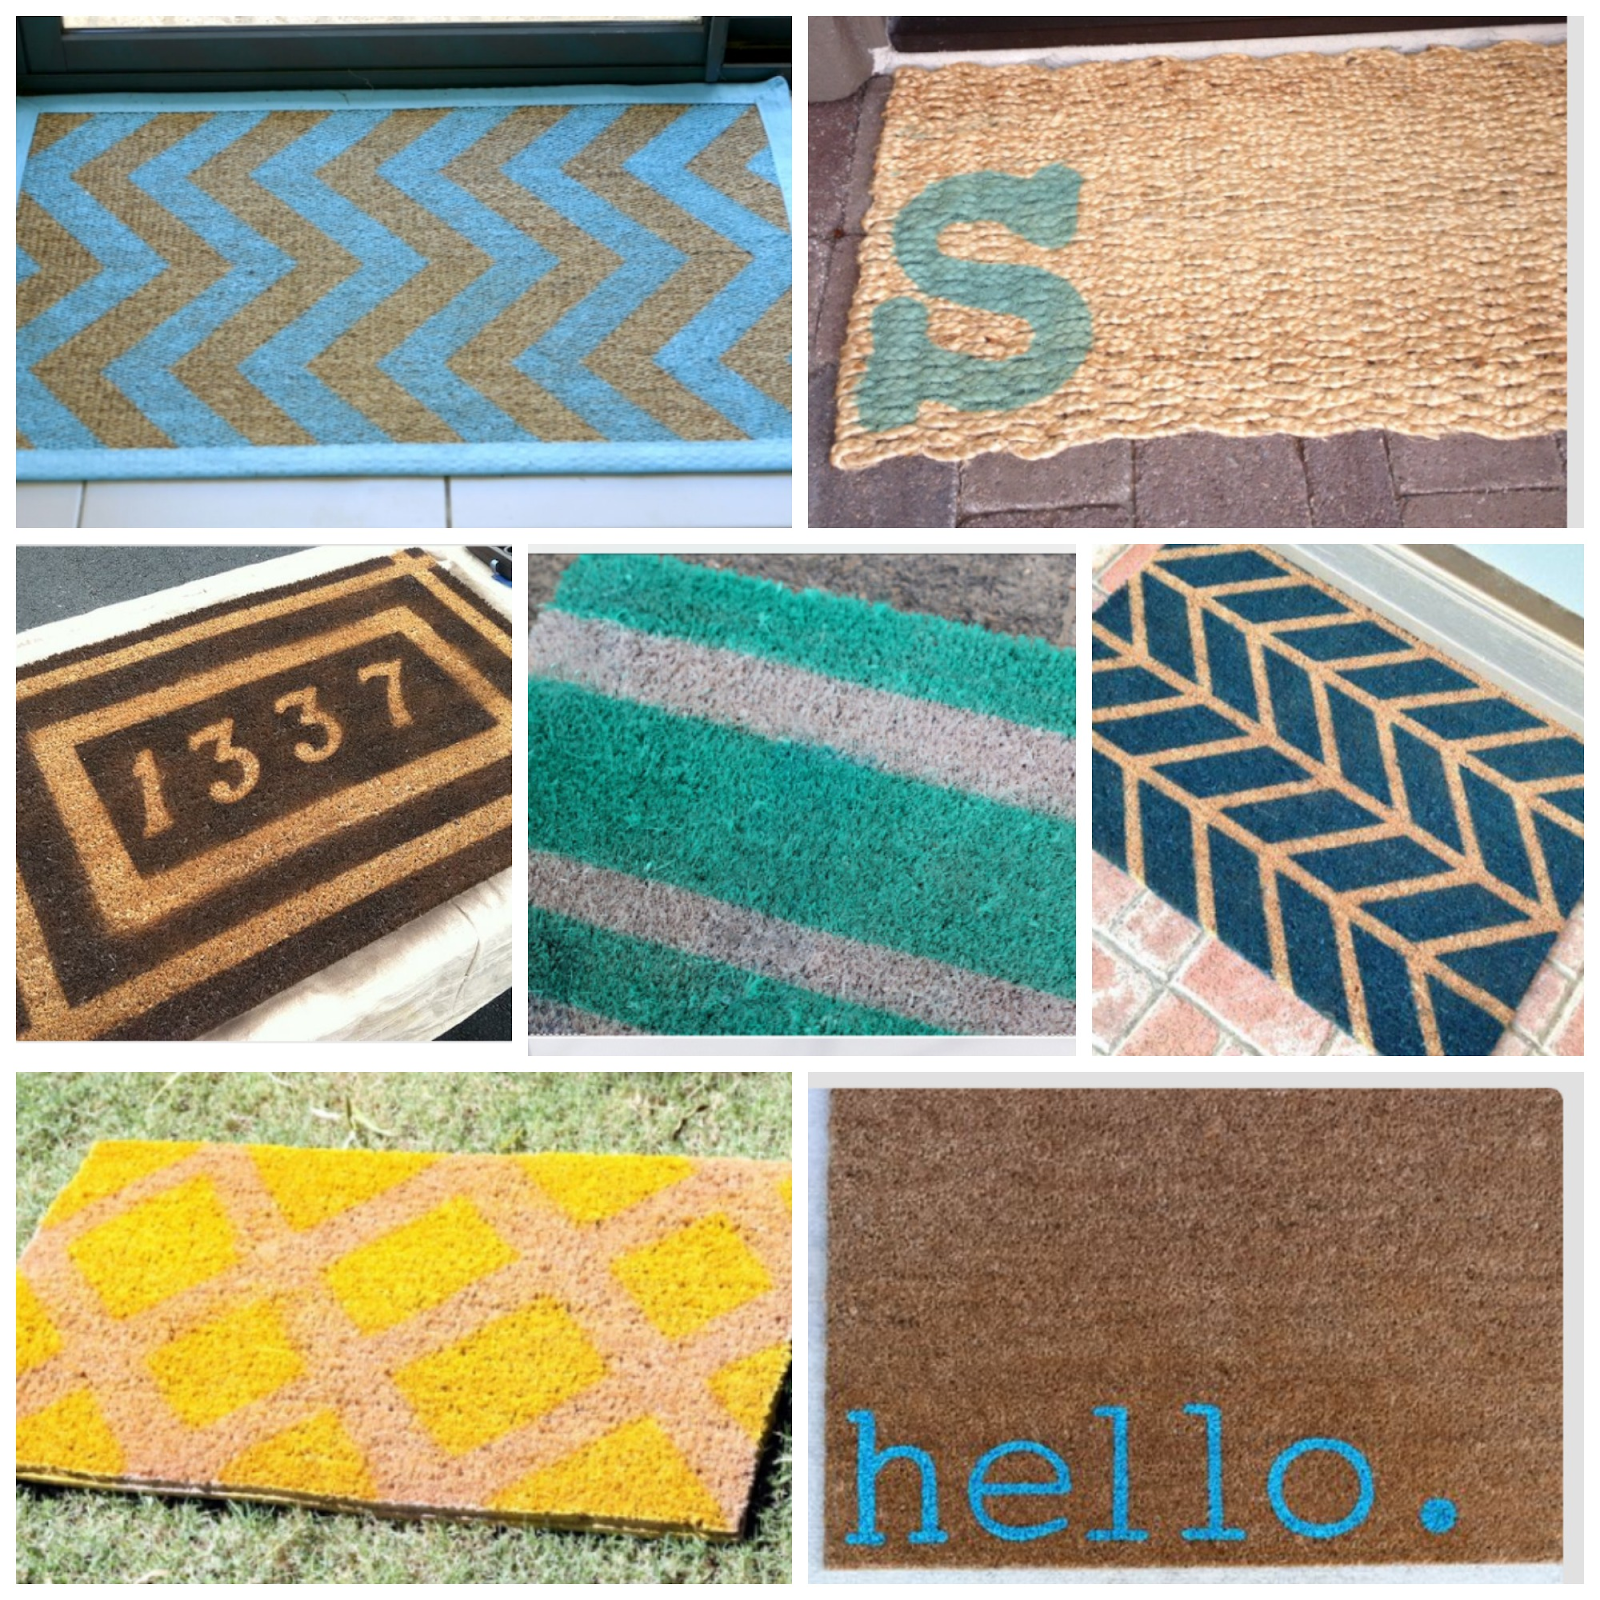 Lot Of Diy Doormat Inspiration. Paint And Personalize Your Old Mat Into A  Fun New